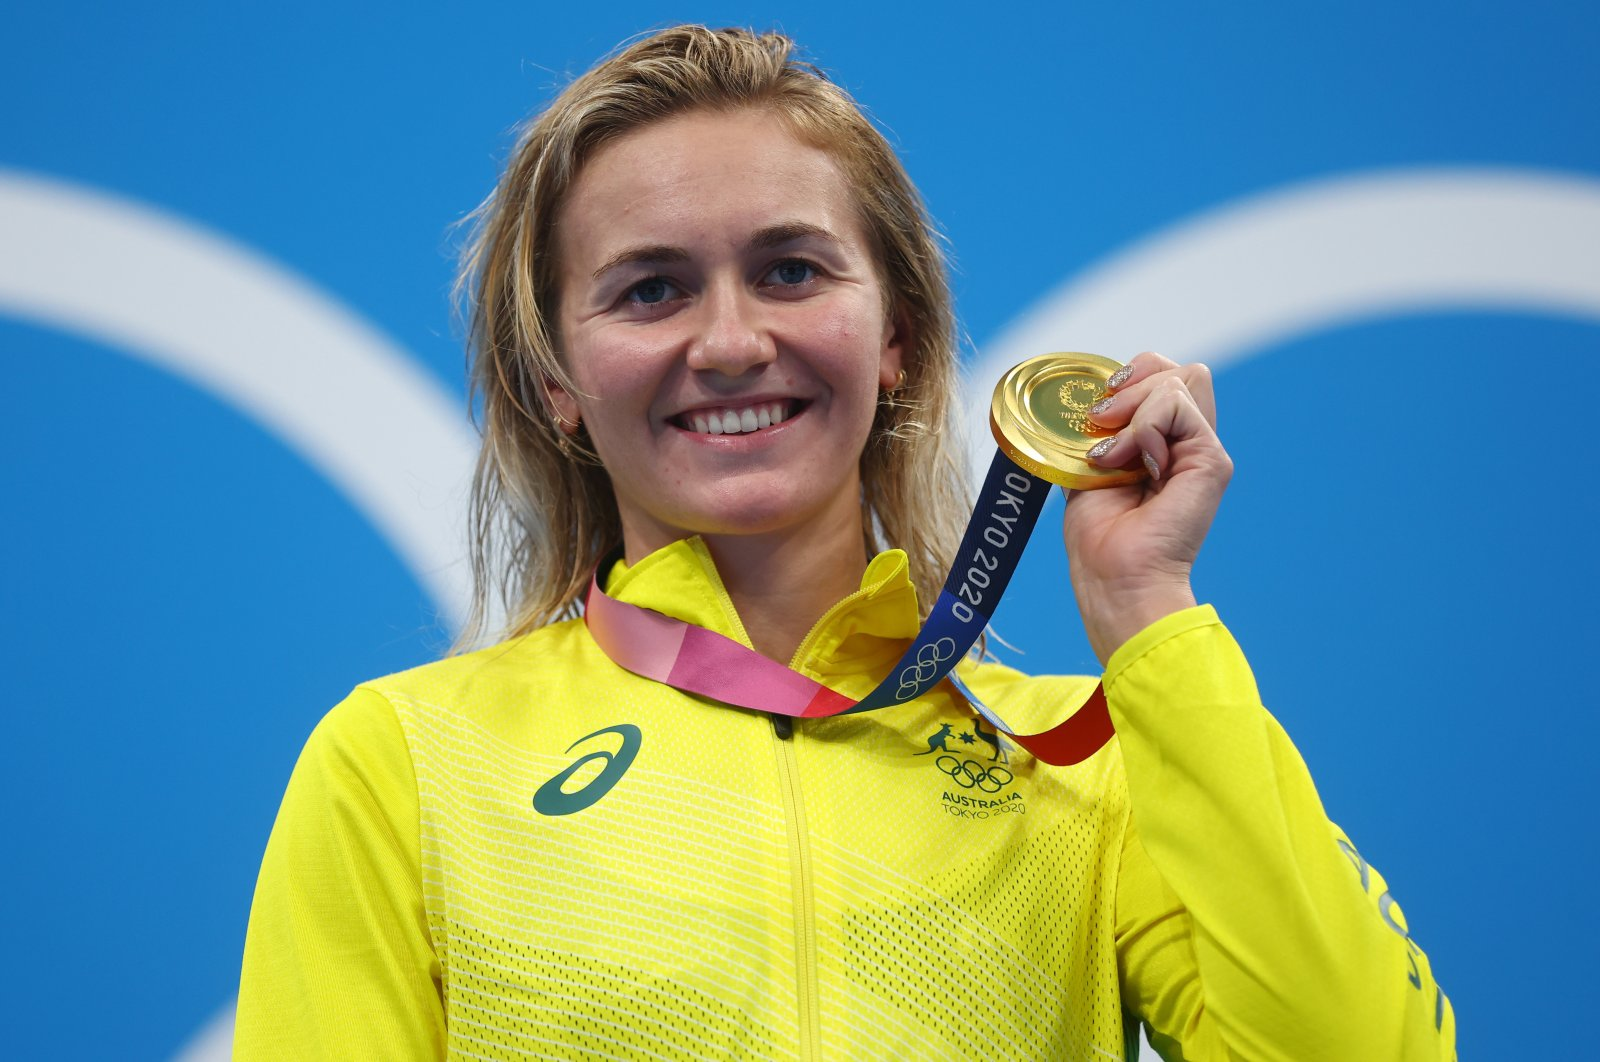 Australia's Ariarne Titmus poses with the 400-meter freestyle Tokyo 2020 Olympics gold medal at the Tokyo Aquatics Centre, Tokyo, Japan, July 26, 2021.